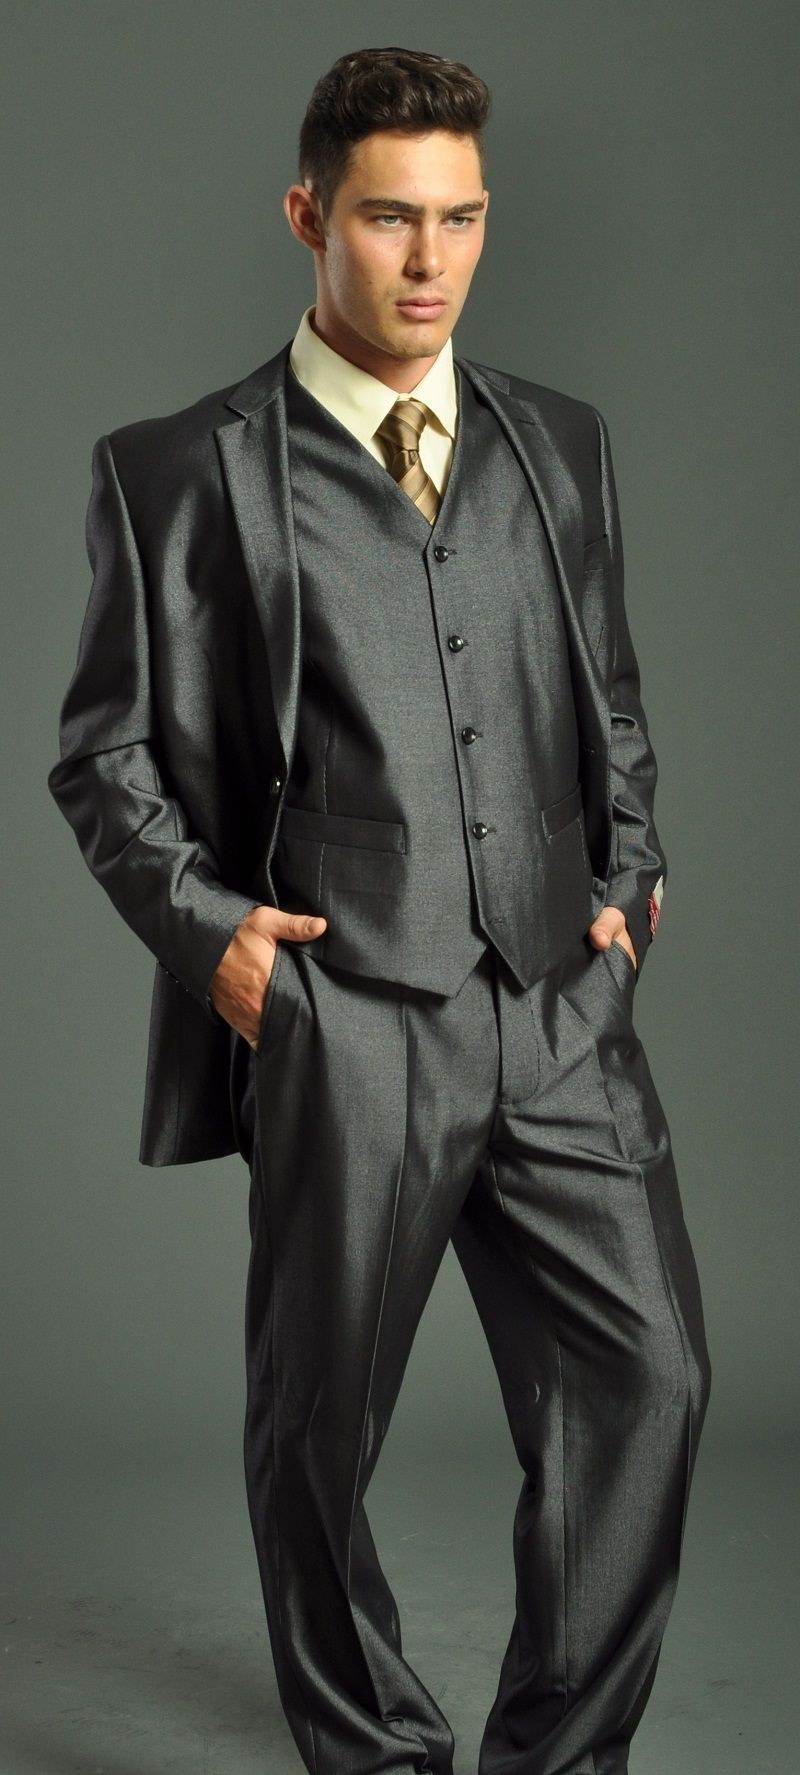 vested suit | Men's Two Button Vested Charcoal Suit: Men's Suits ...